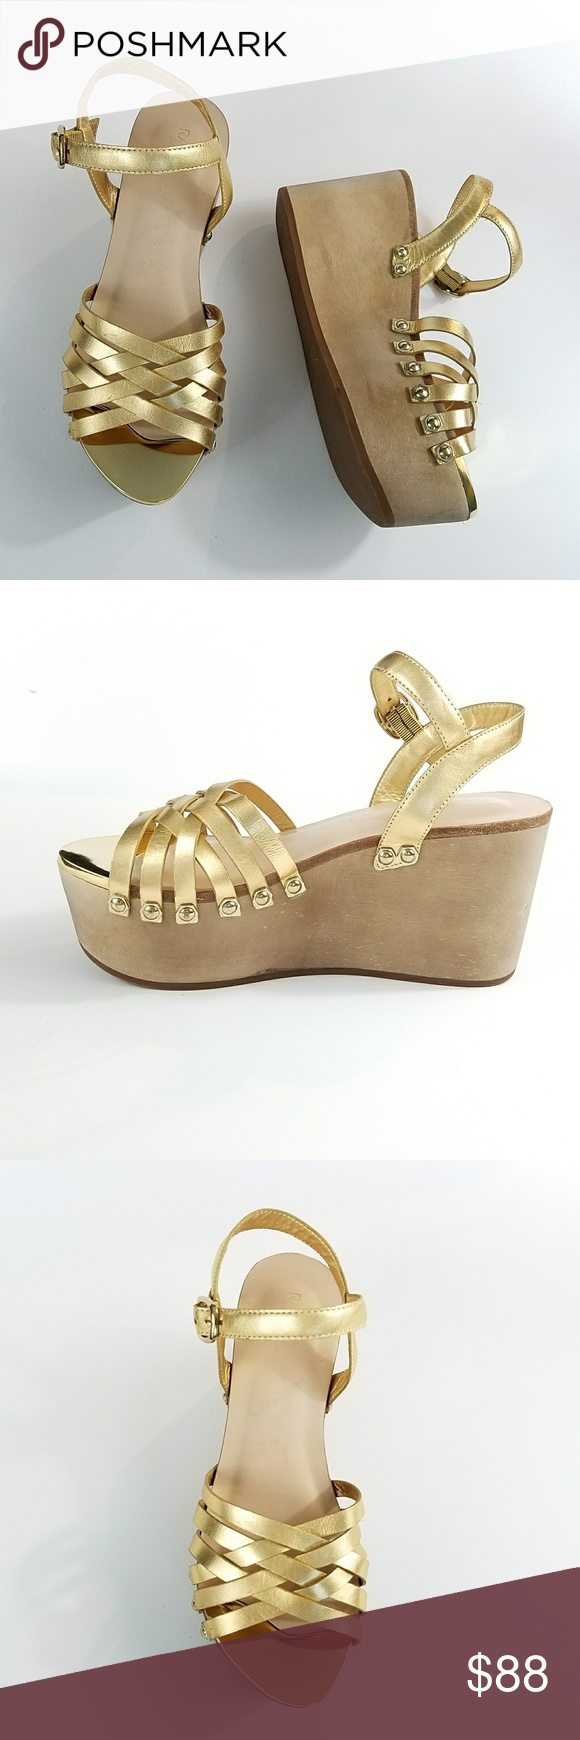 0bcb9b0d590d Rachel Zoe Mae Gold Wedge Sandals 7.5 Rachel Zoe Mae Gold Wedge Platform  Sandals 7.5 Leather